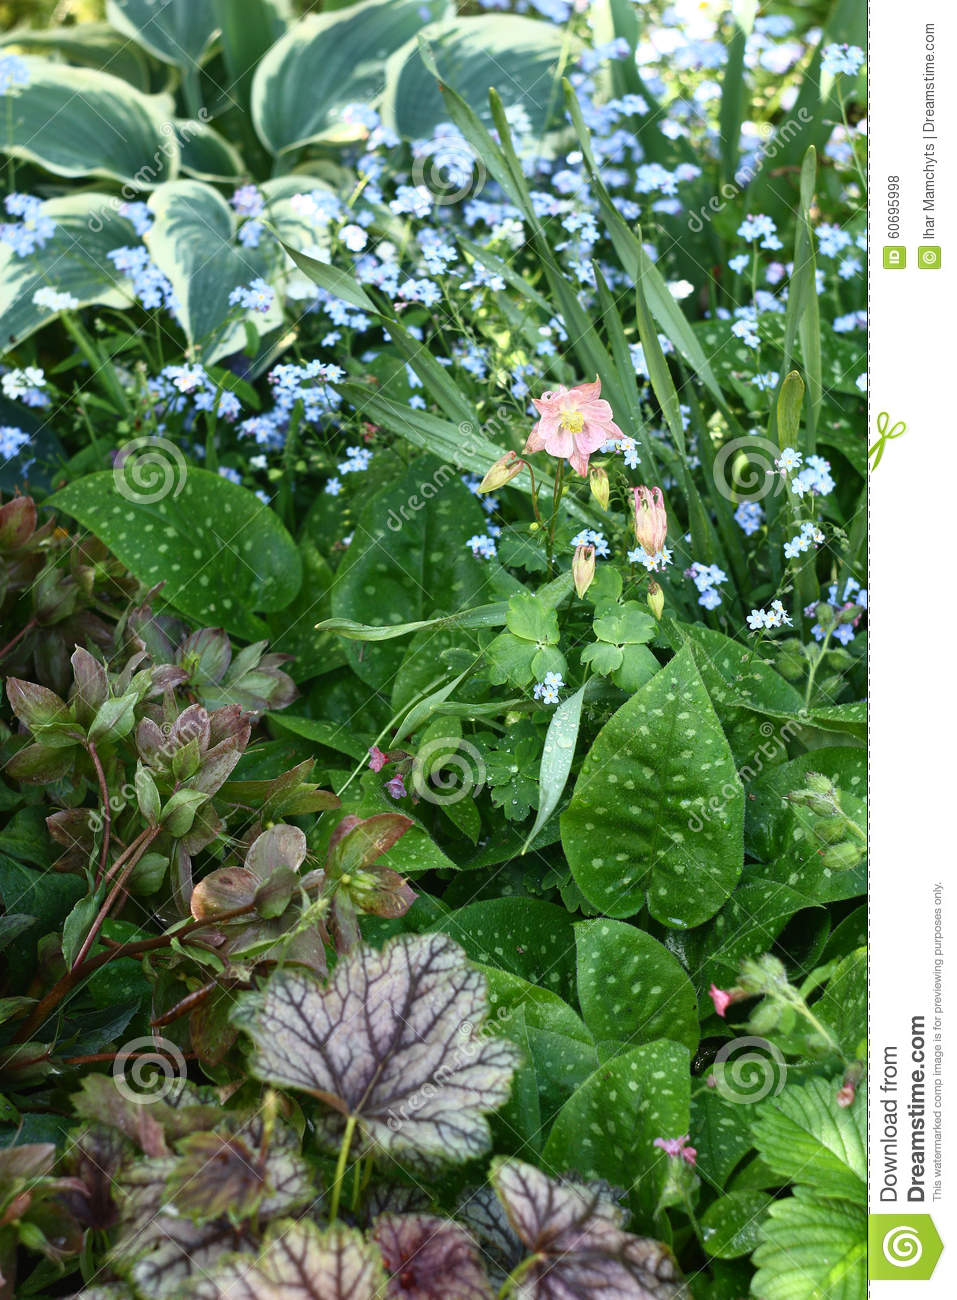 Garden plants stock photo image 60695998 for Different garden plants